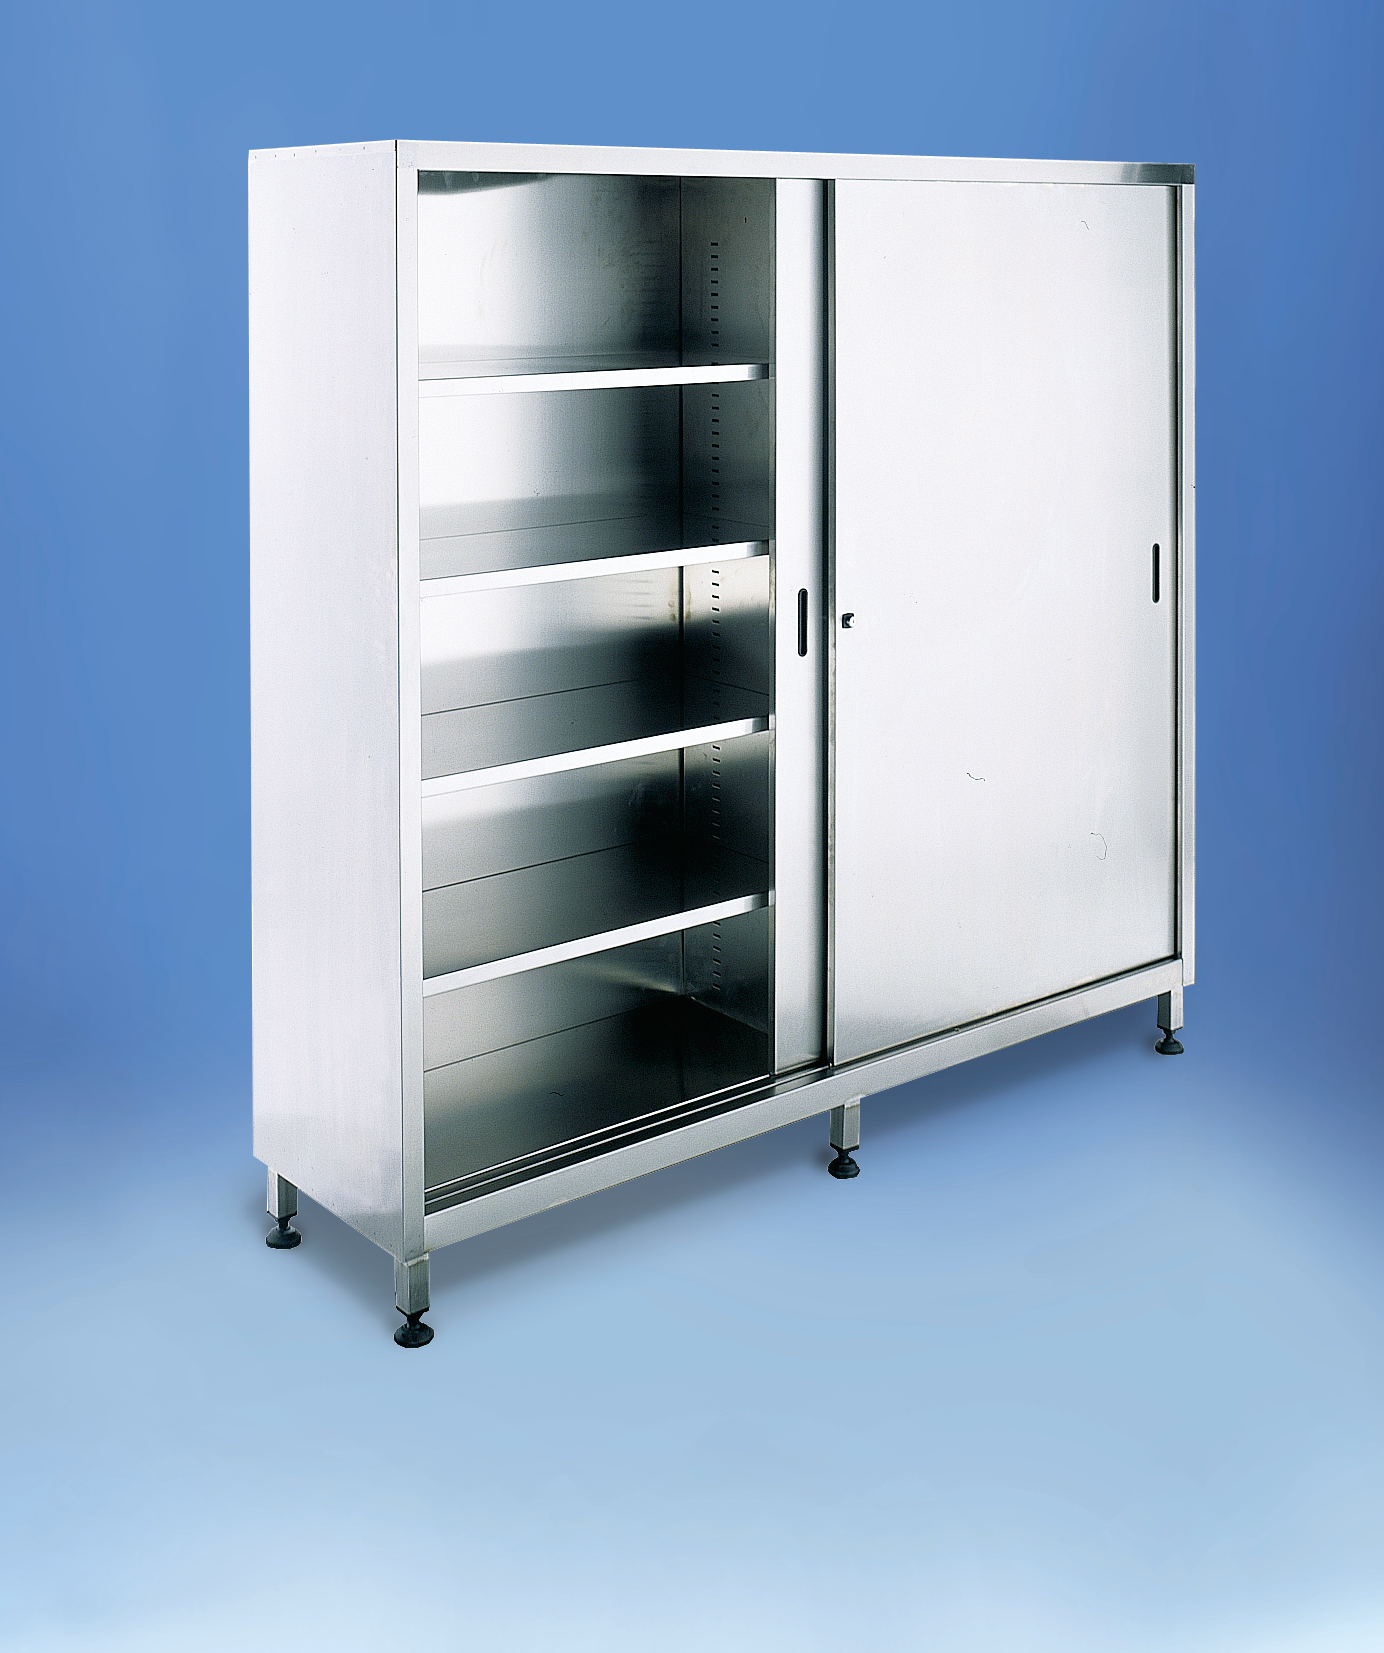 Storage Cabinets Extra Large by JK Stainless Solutions Ltd